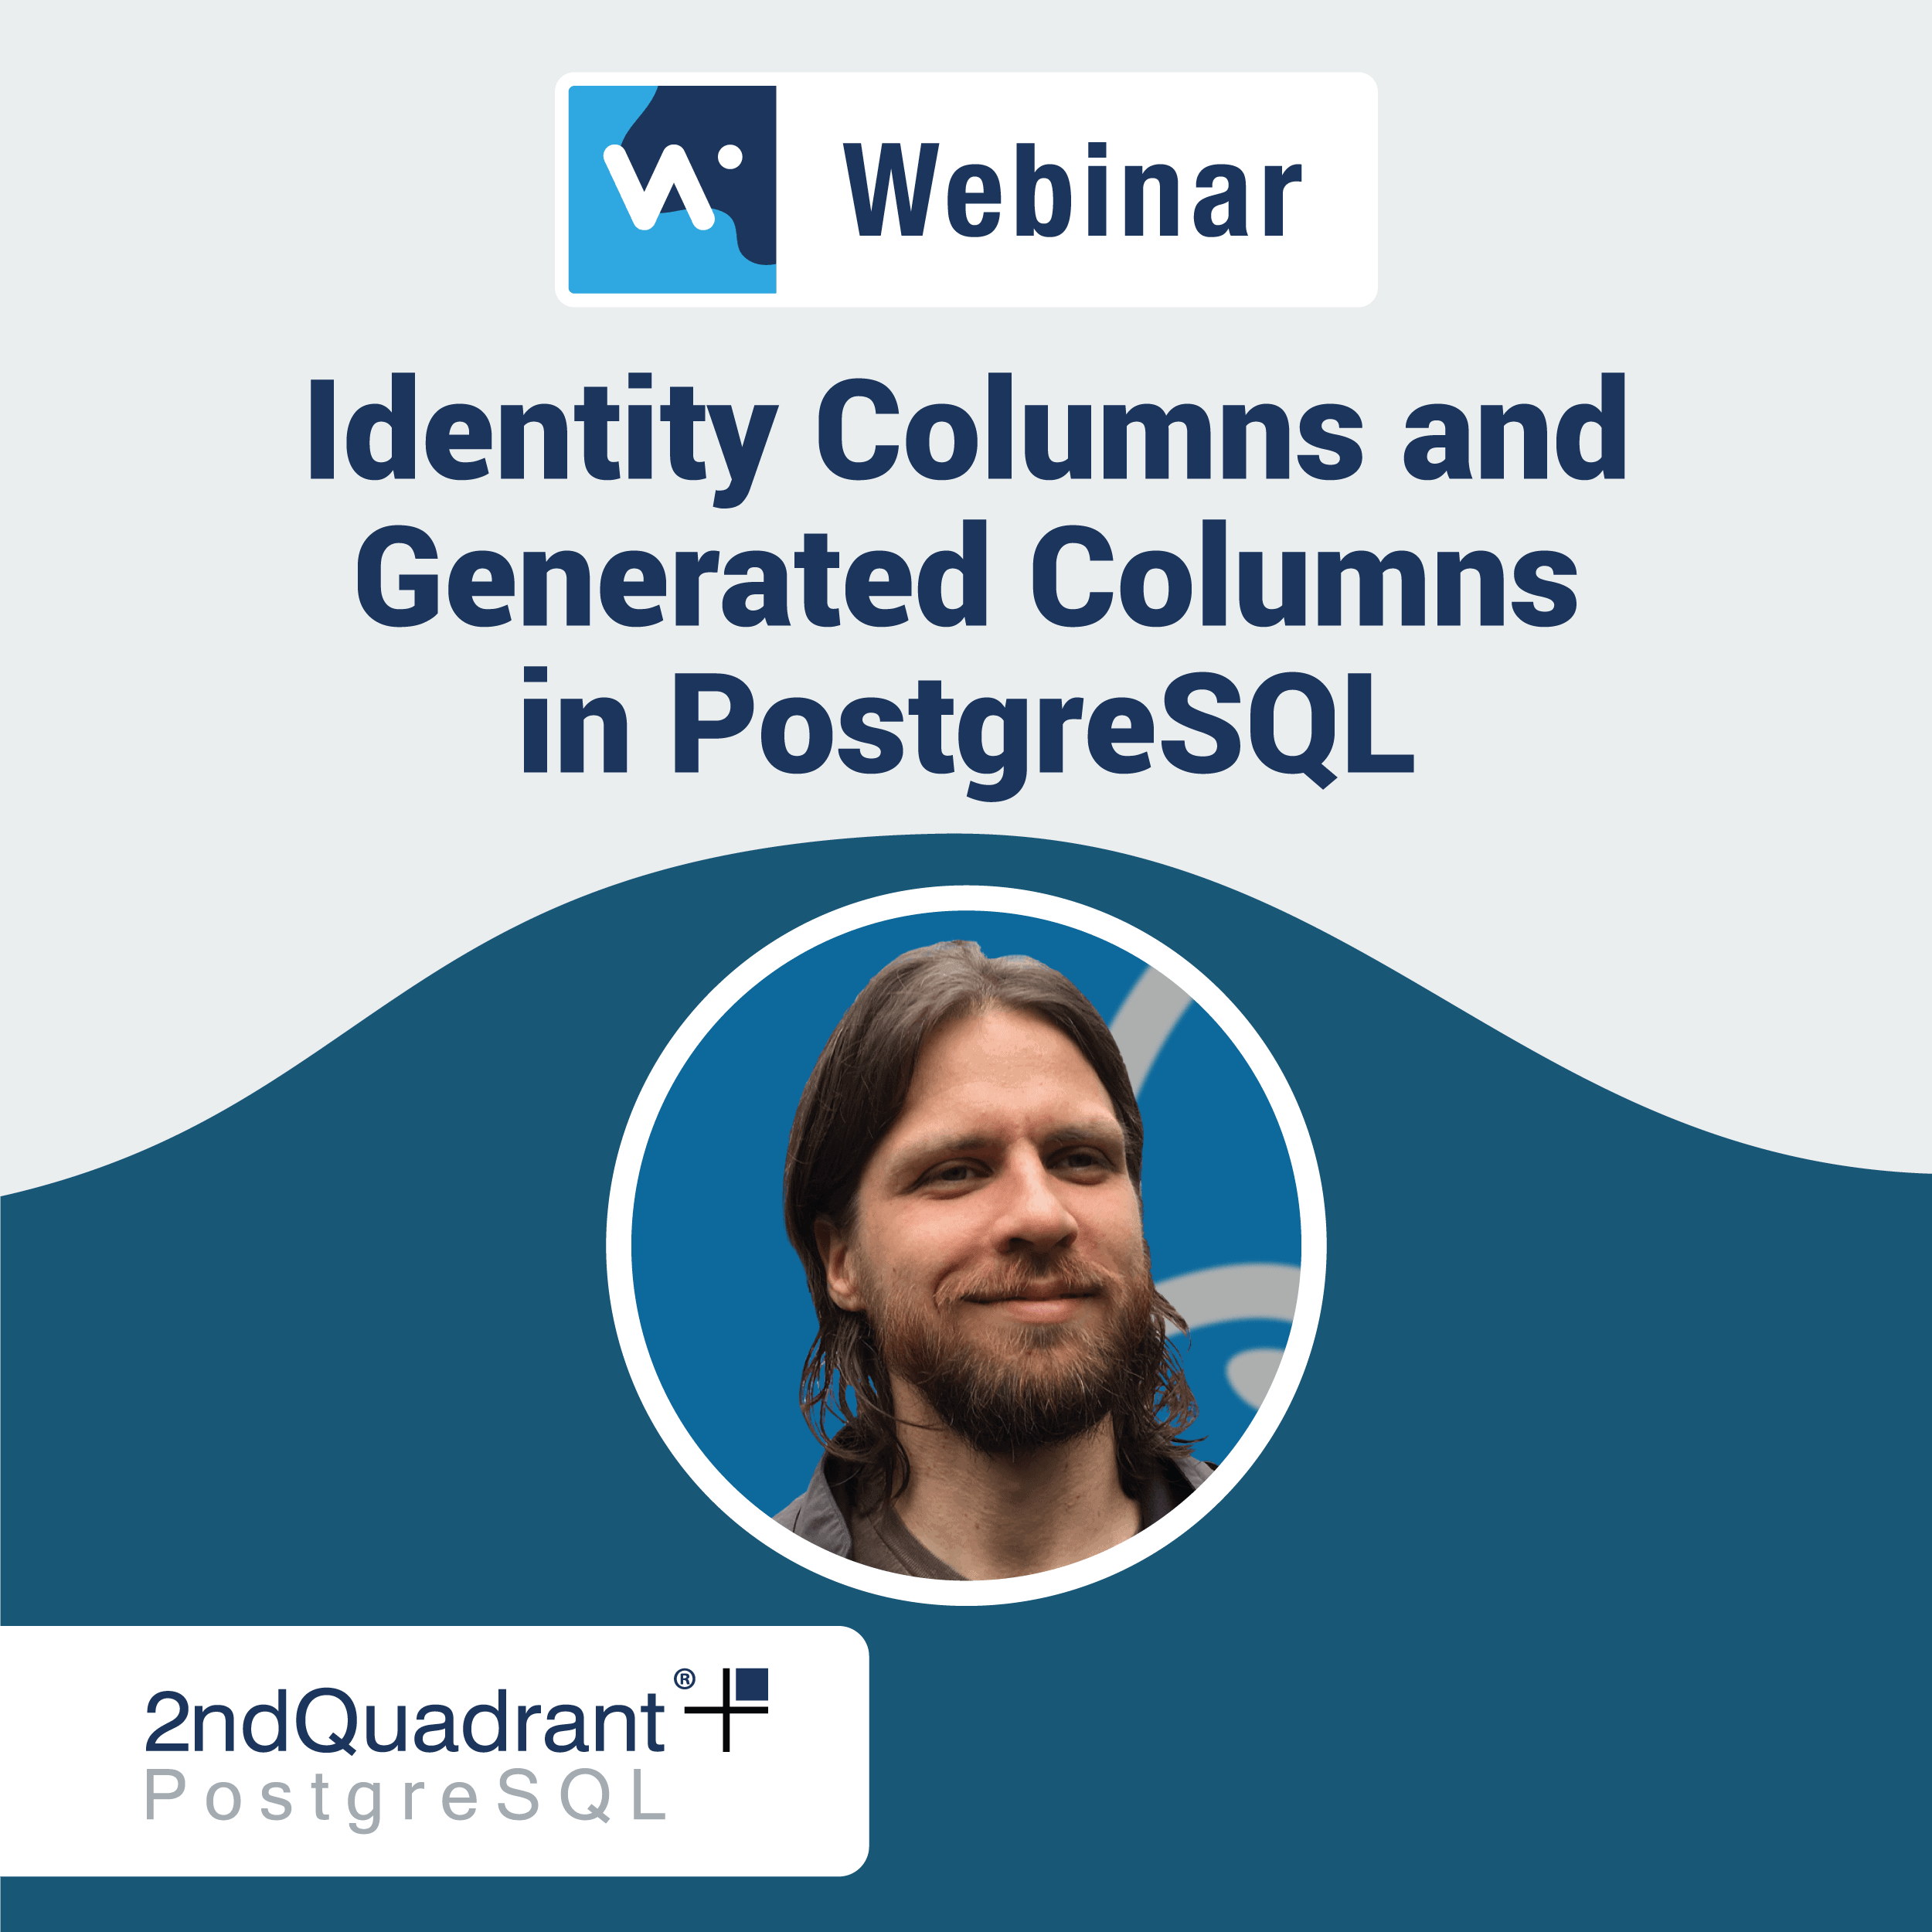 Identity Columns and Generated Columns in PostgreSQL